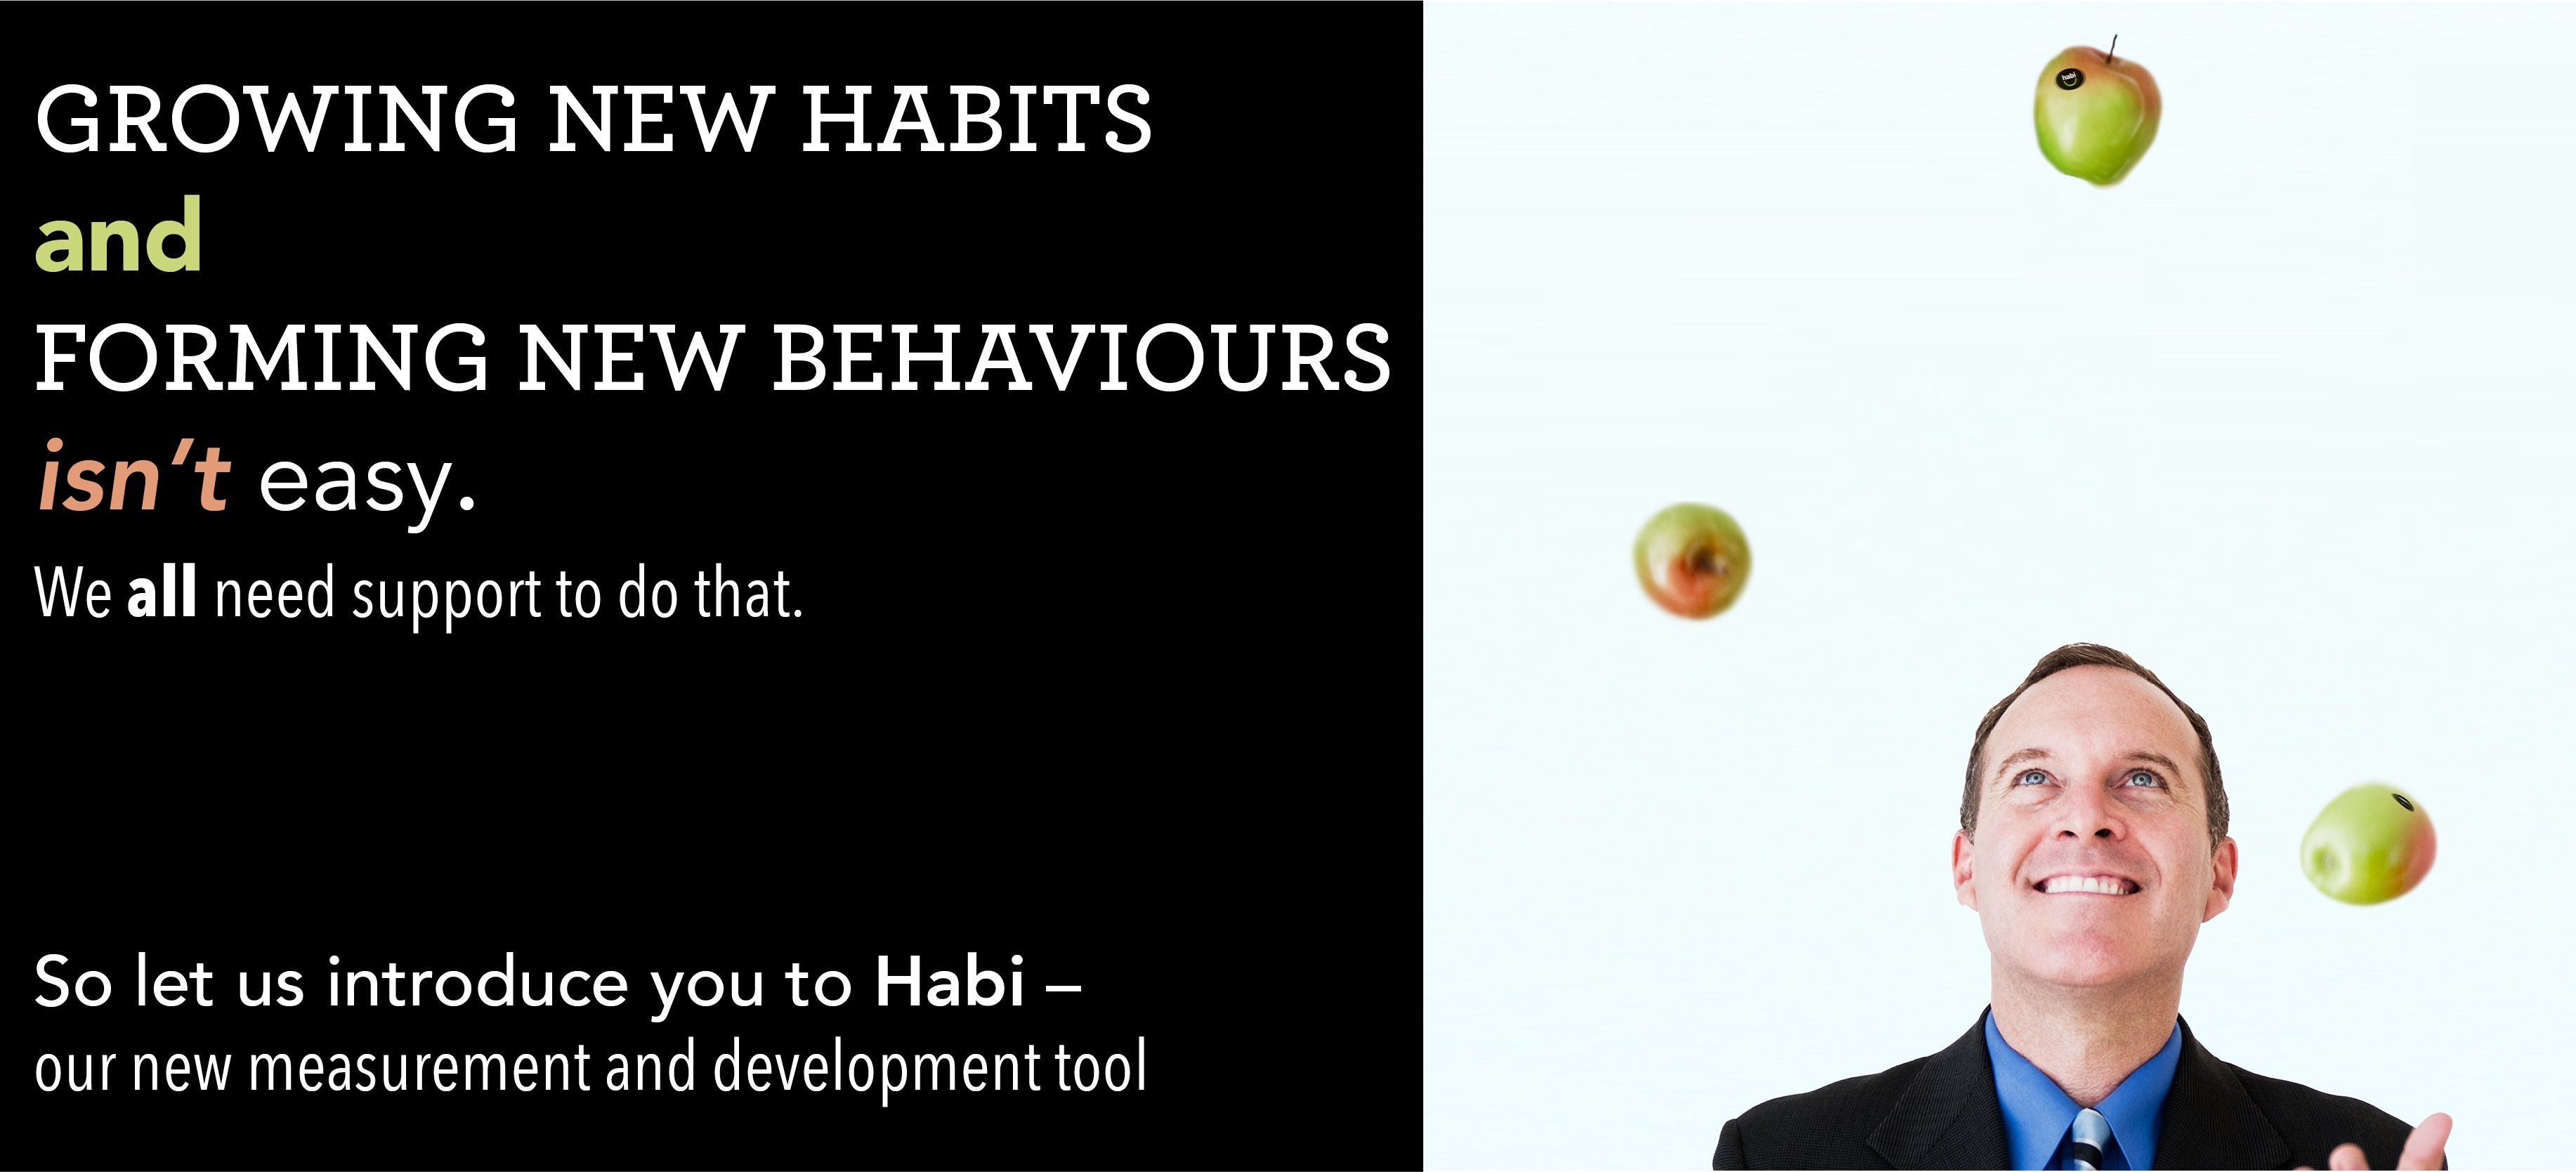 Growing new habits and forming new behaviours